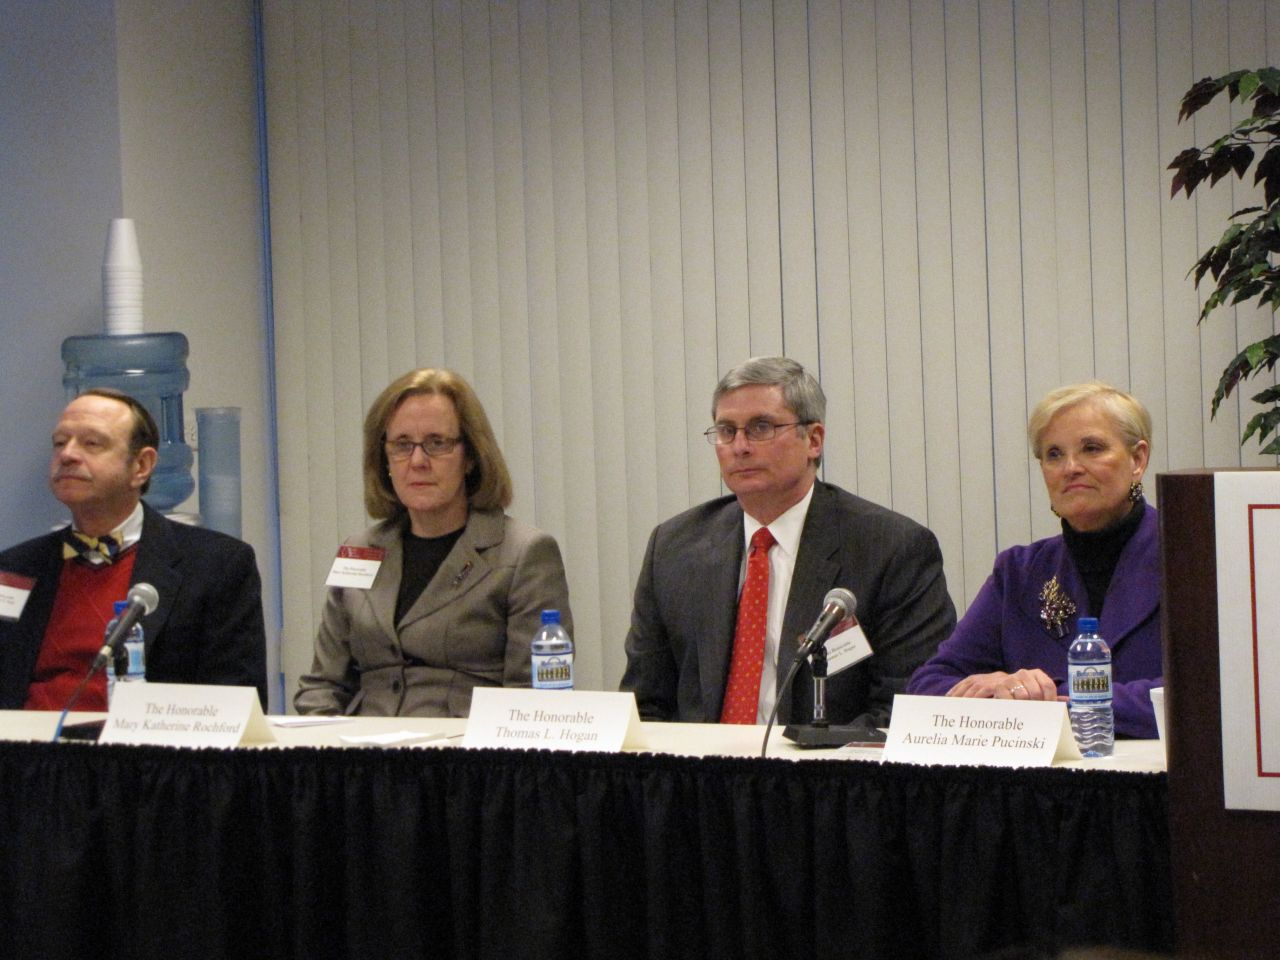 (Click to enlarge) Candidates Sebastian T. Patti, Mary Katherine Rochford, Thomas L. Hogan and Aurelia Marie Pucinski